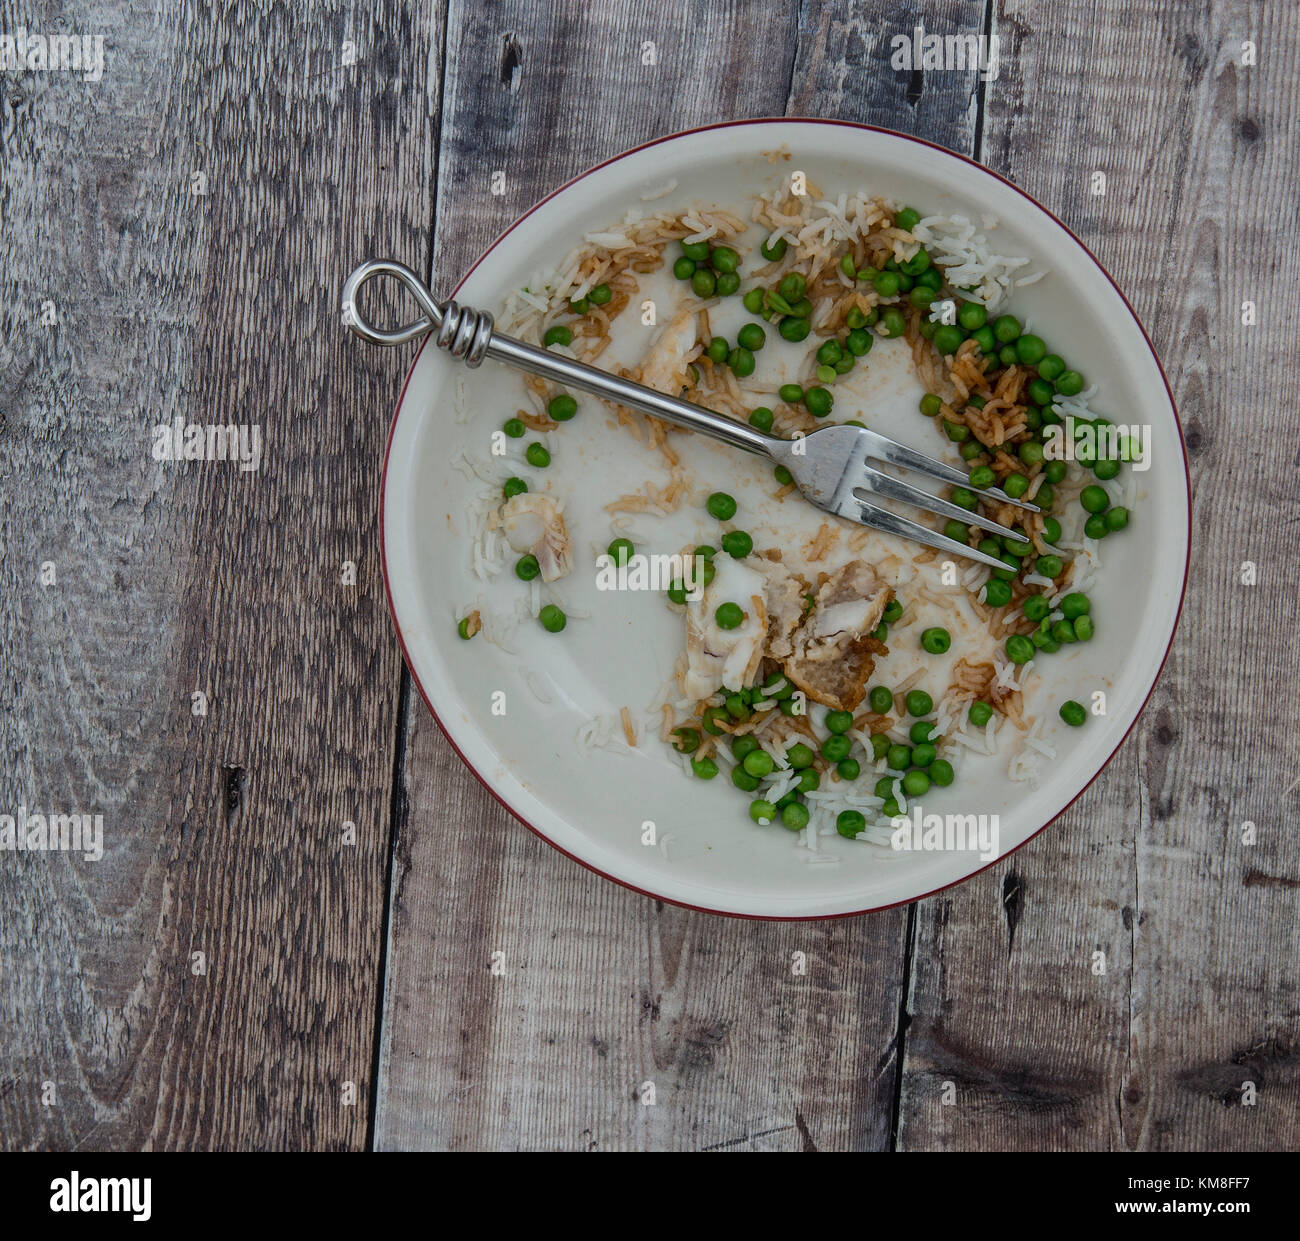 Dish of leftovers on a rustic wooden background with copy space - Stock Image